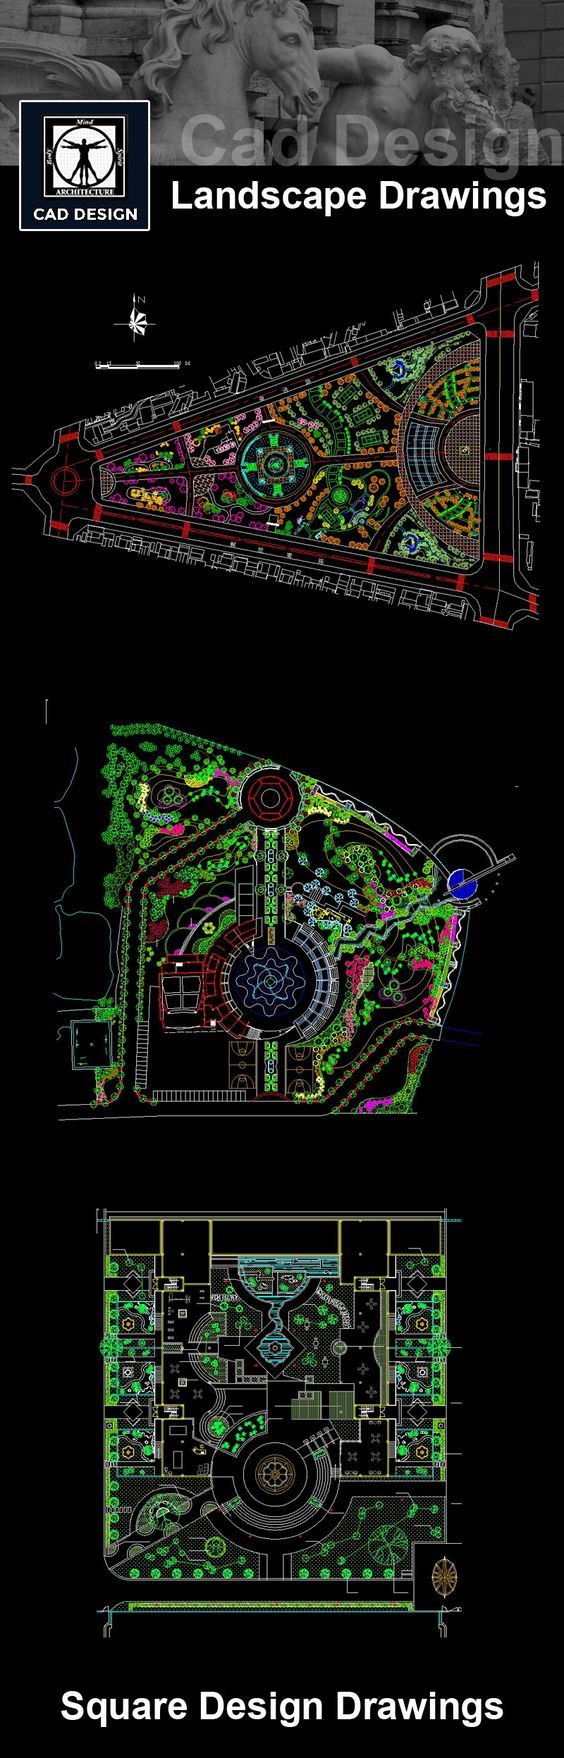 Download Urban Design & Planning Drawings now!! (https://www.cadblocksdownload.com/collections/all/landscape) Download Landscape CAD Drawings   AutoCAD Blocks   Square Design   Residential Landscape  City Square│Landscape Details  Urban City Design  See more about AutoCAD, Cad Drawing and Architecture Details